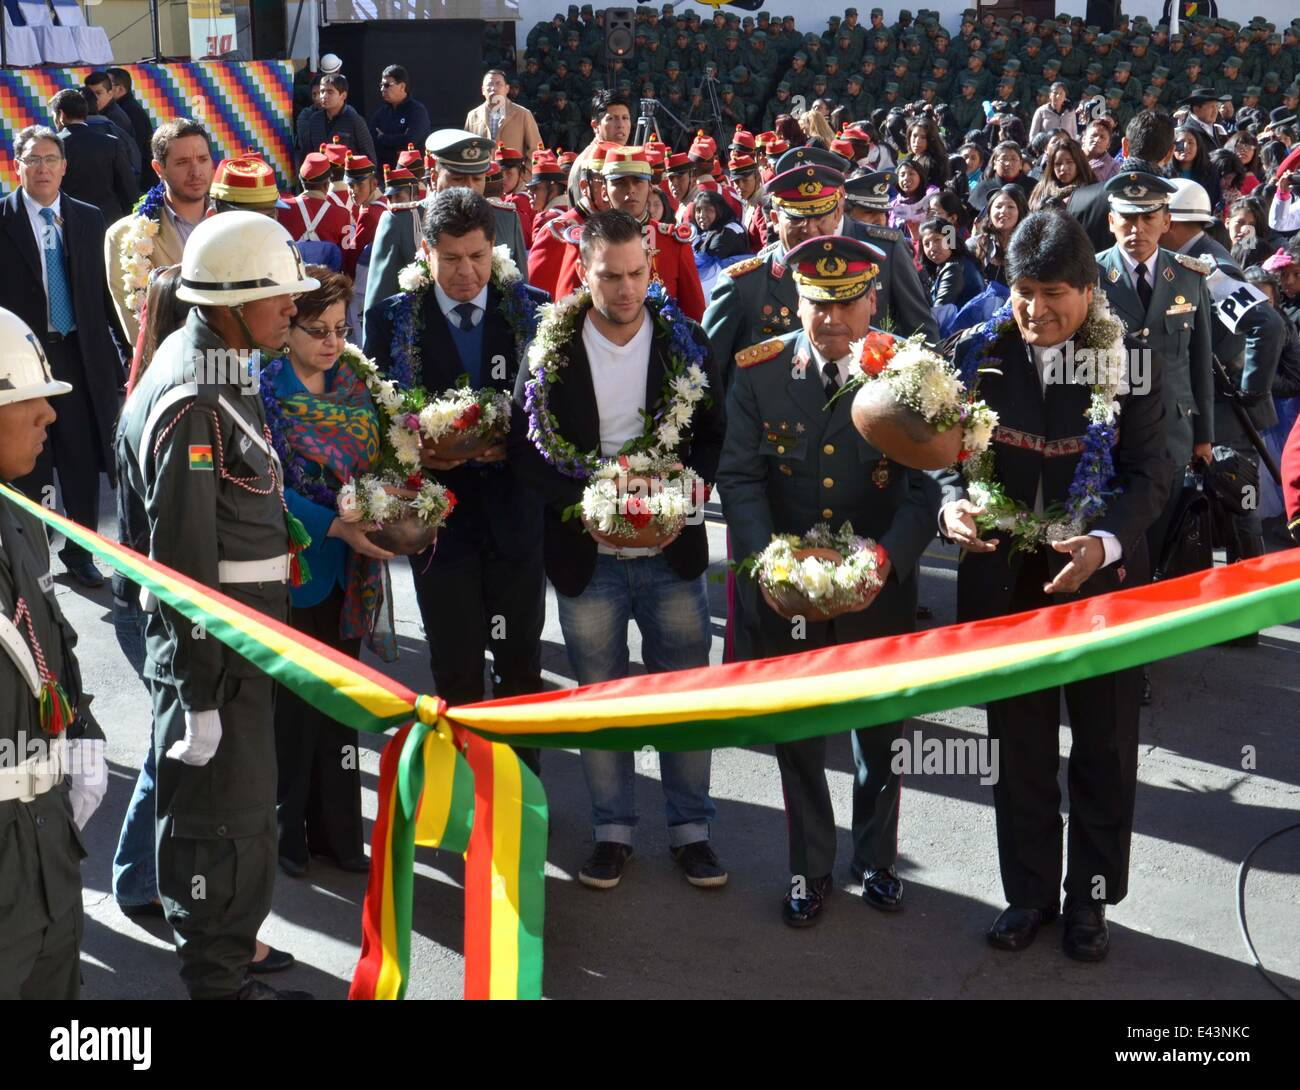 La Paz, Bolivia. 2nd July, 2014. Bolivian President Evo Morales (R) participates in the inauguration of a technology - Stock Image